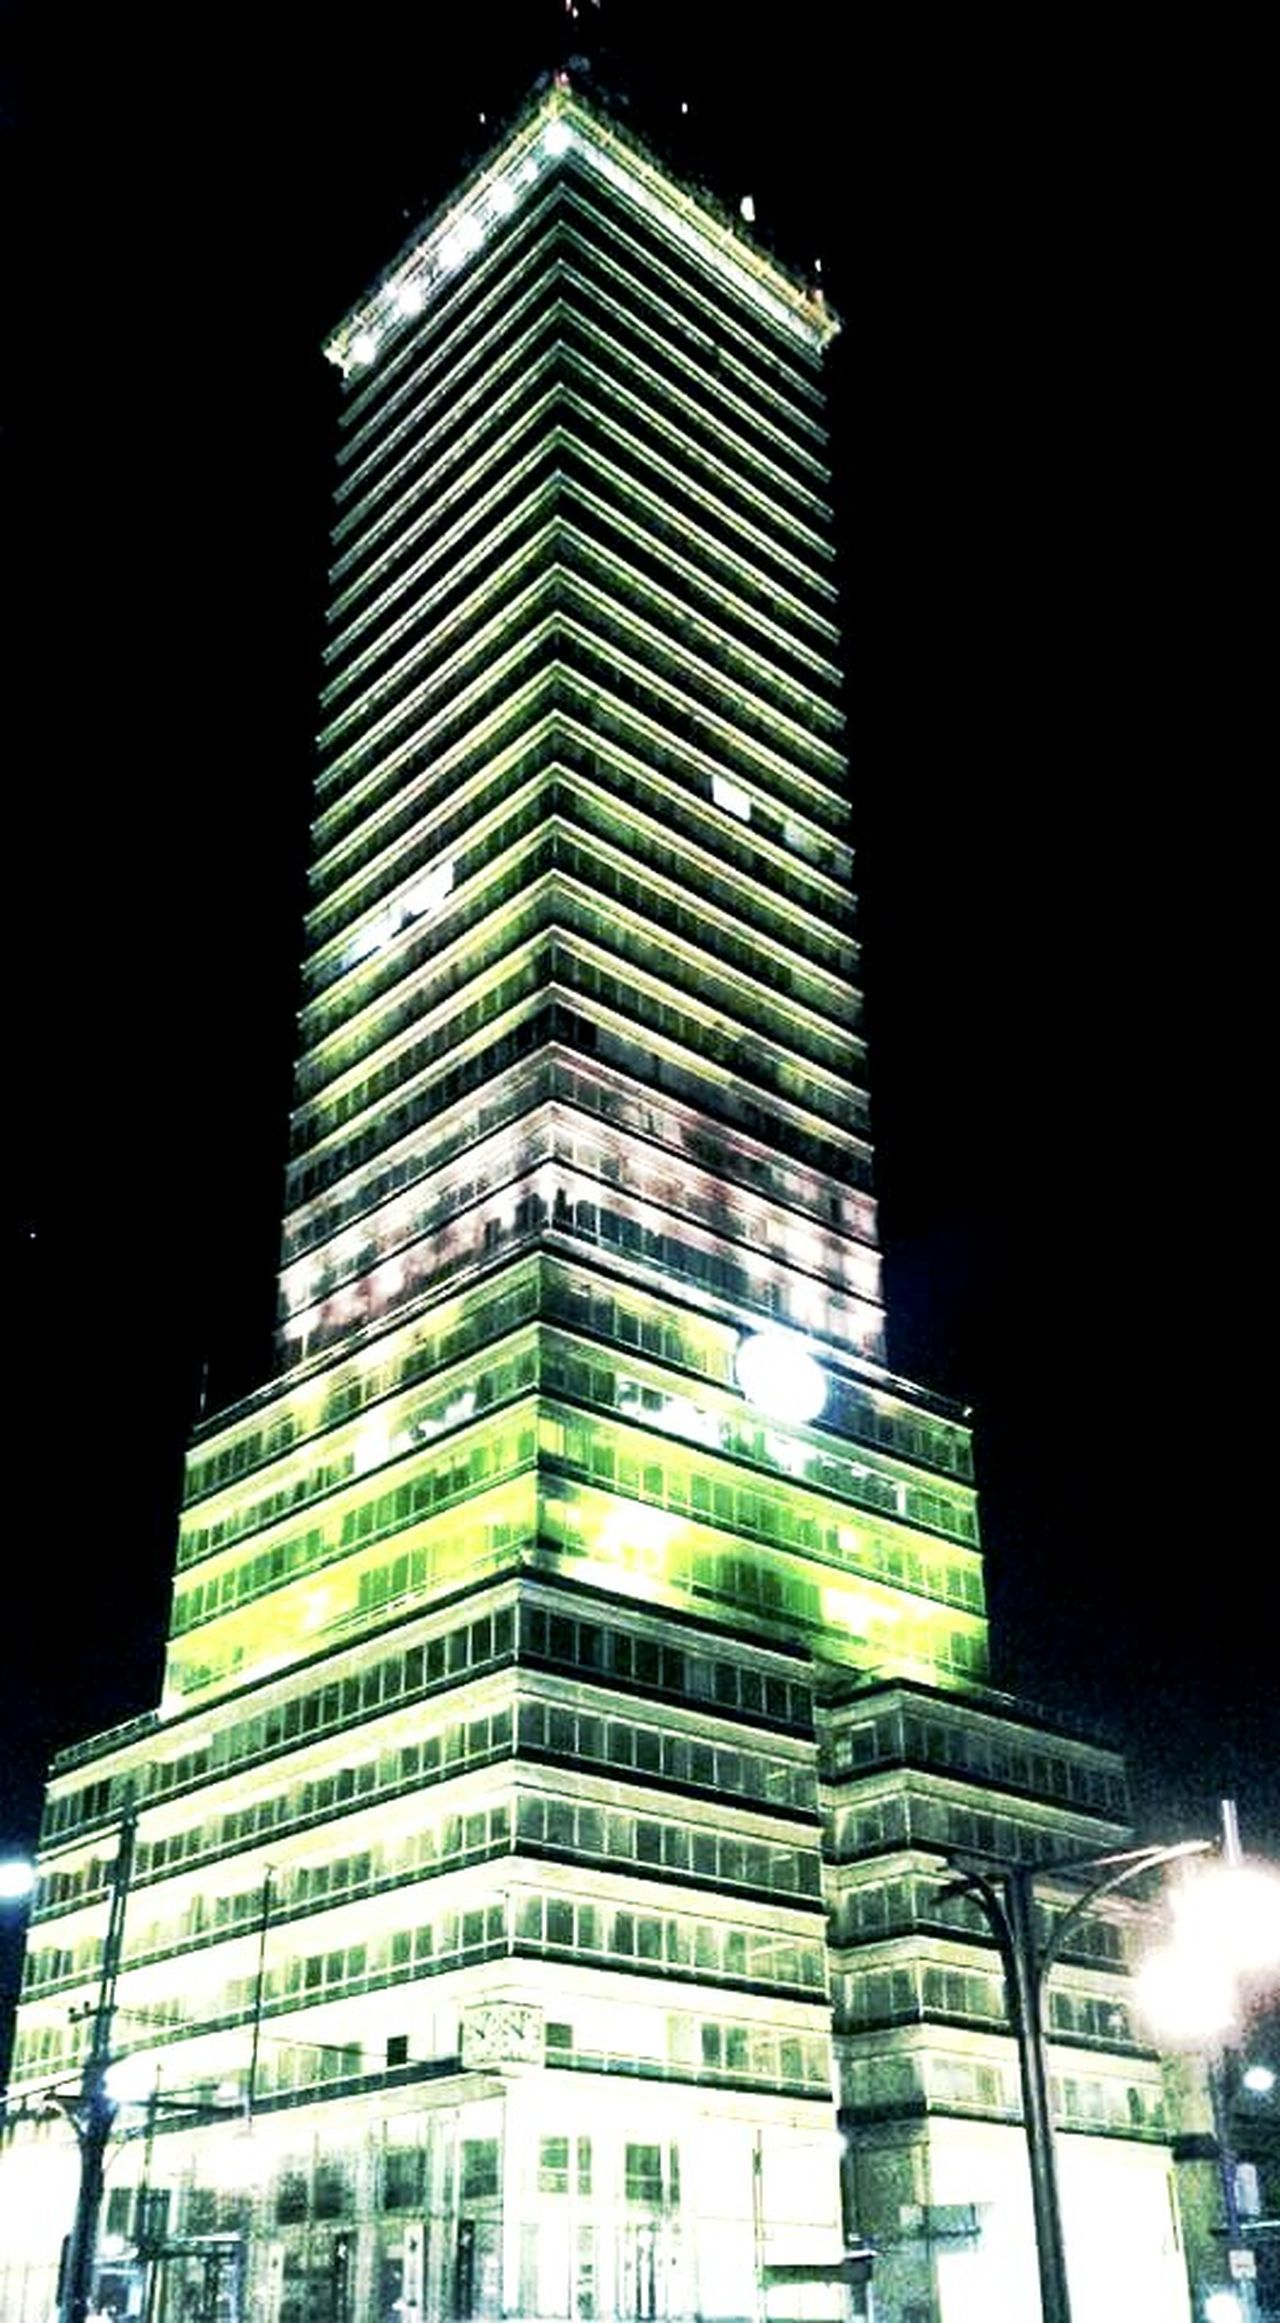 Night Illuminated Building Exterior Architecture Arquitectura Torre Latinoamerica Noche Latinoamericana Luces